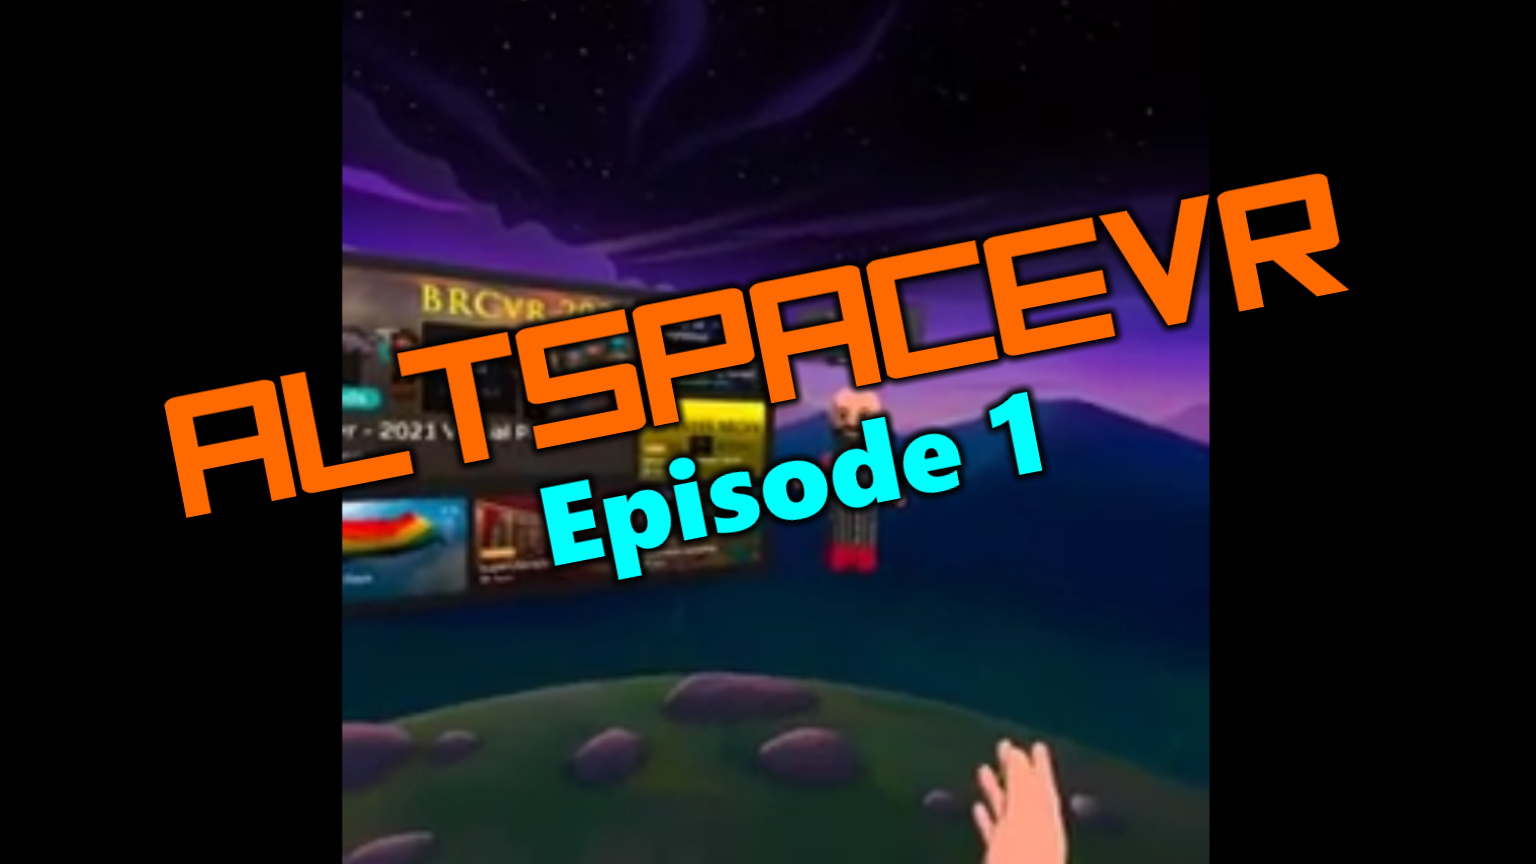 Travel with me to AltspaceVR episode 1